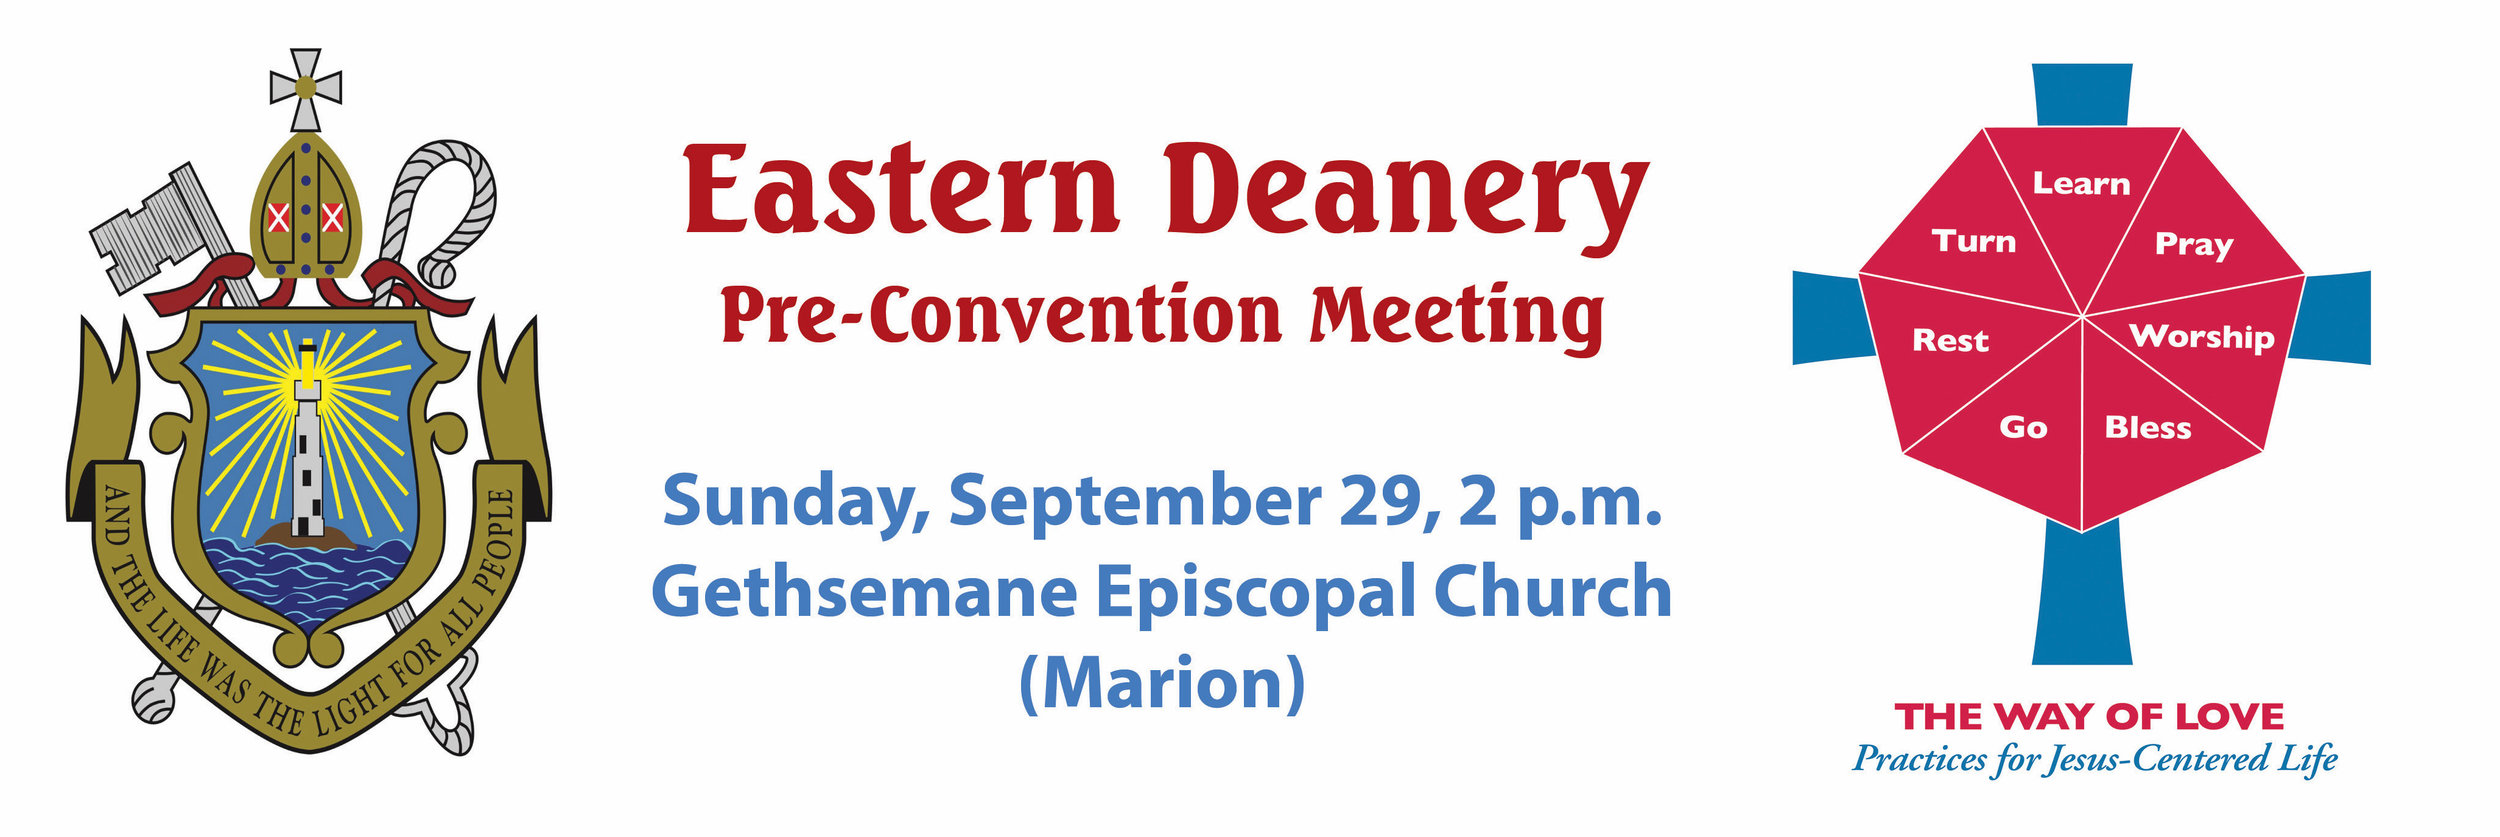 2019 Eastern Deanery DioCon Graphic.jpg